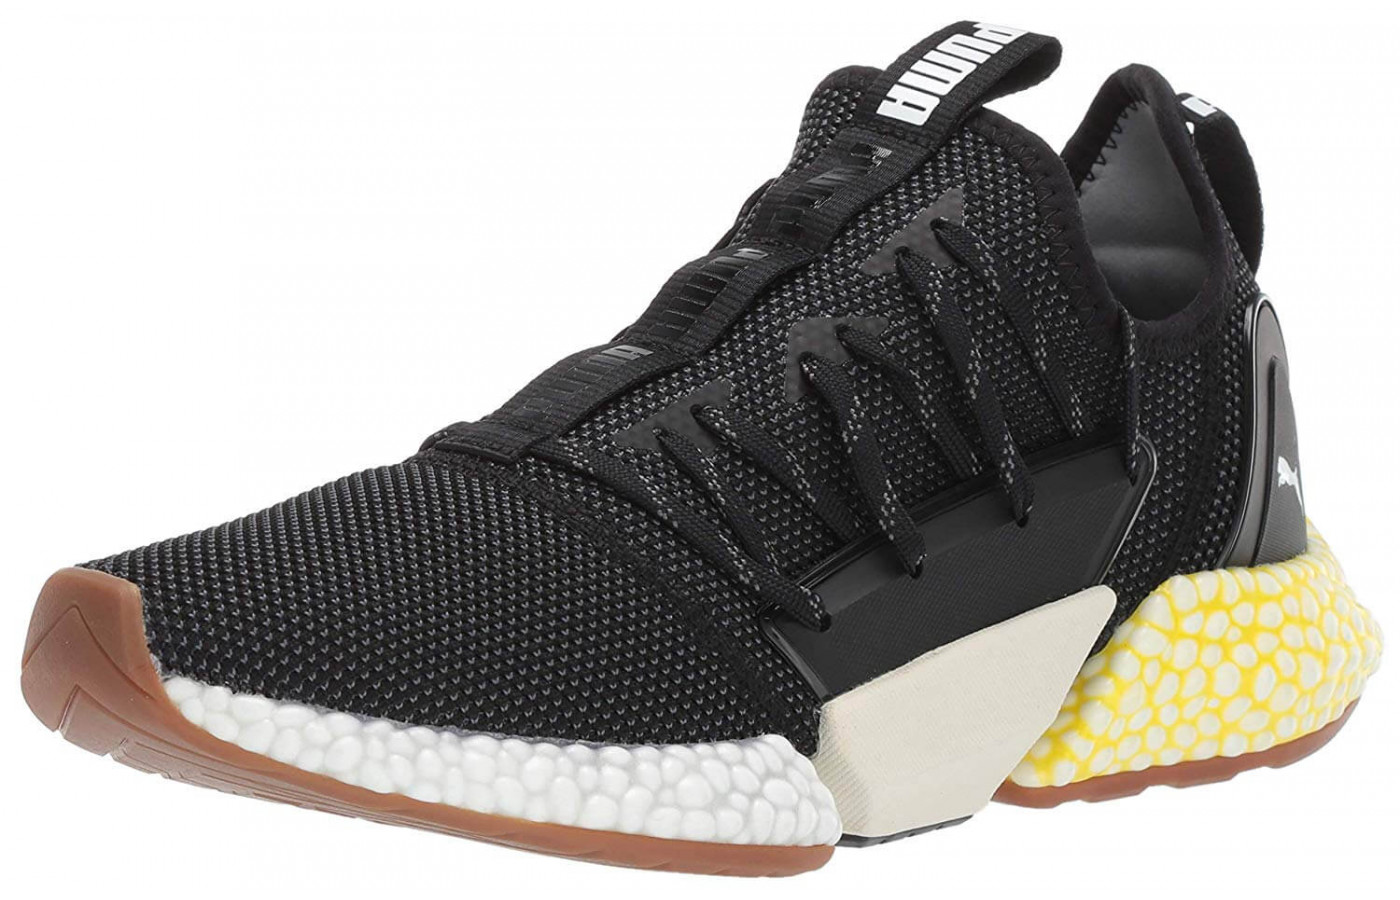 Puma Hybrid Rocket Runner Main